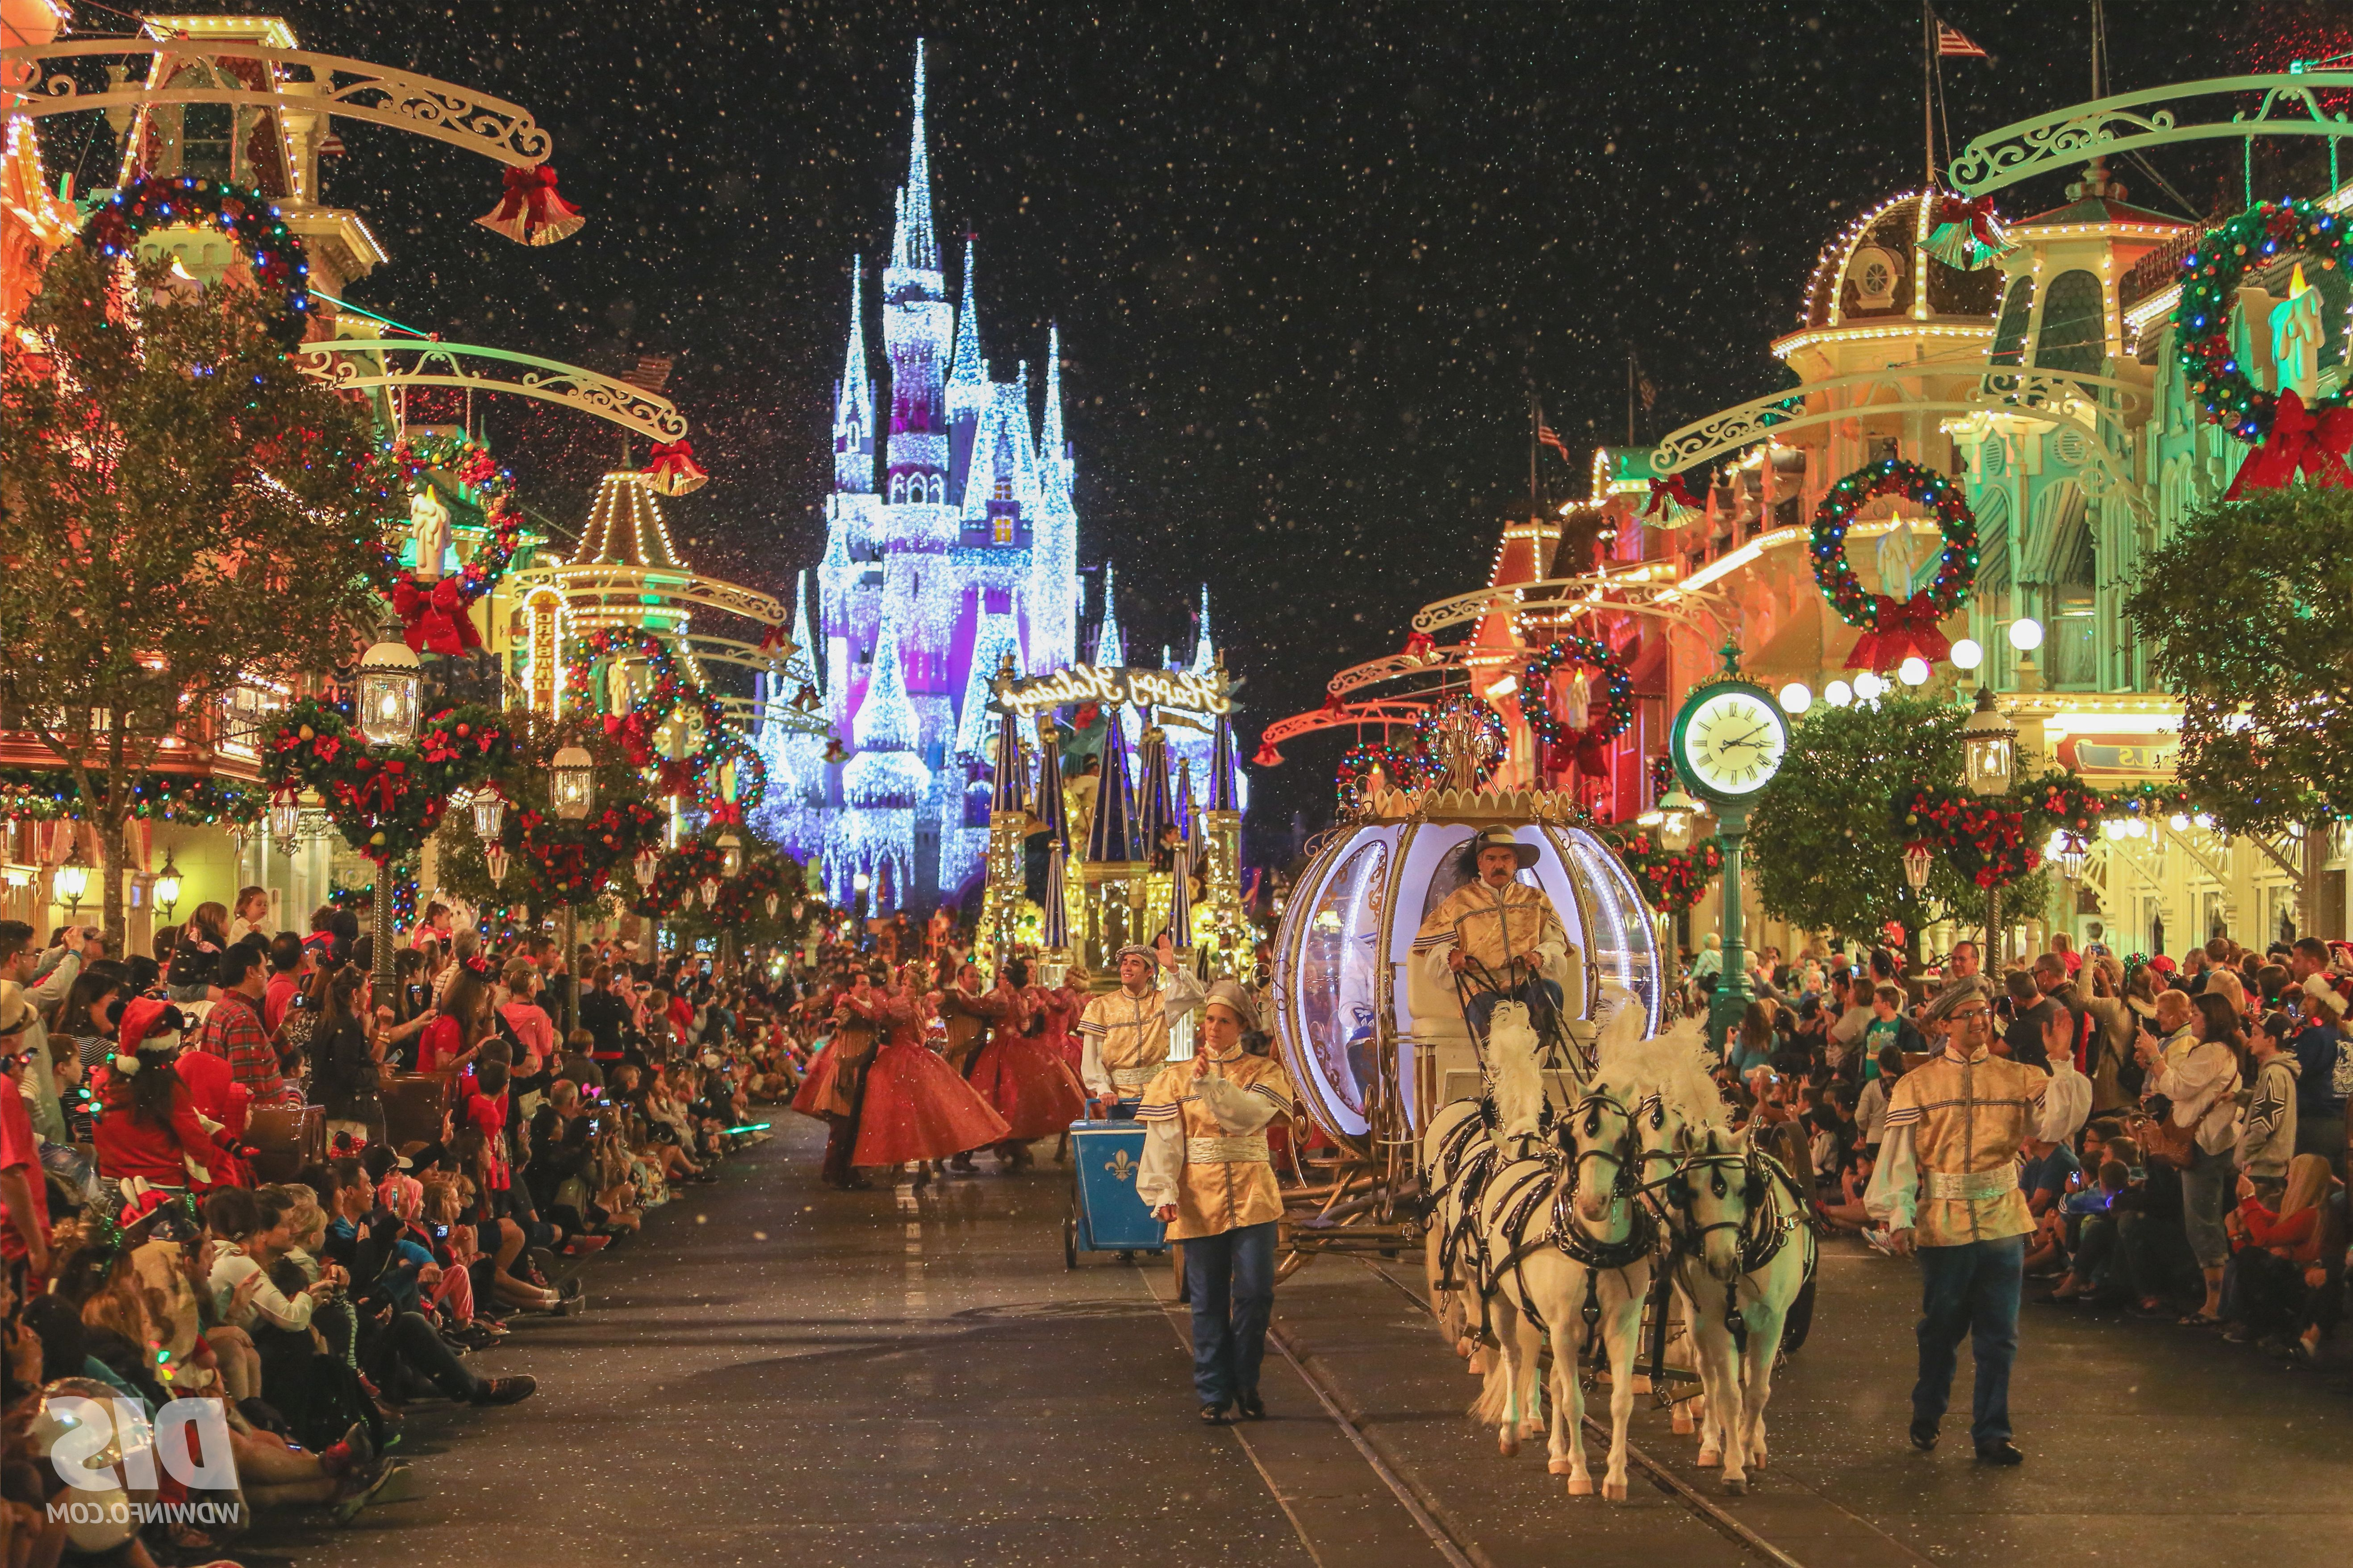 Disney World Wallpaper Posted By Samantha Sellers